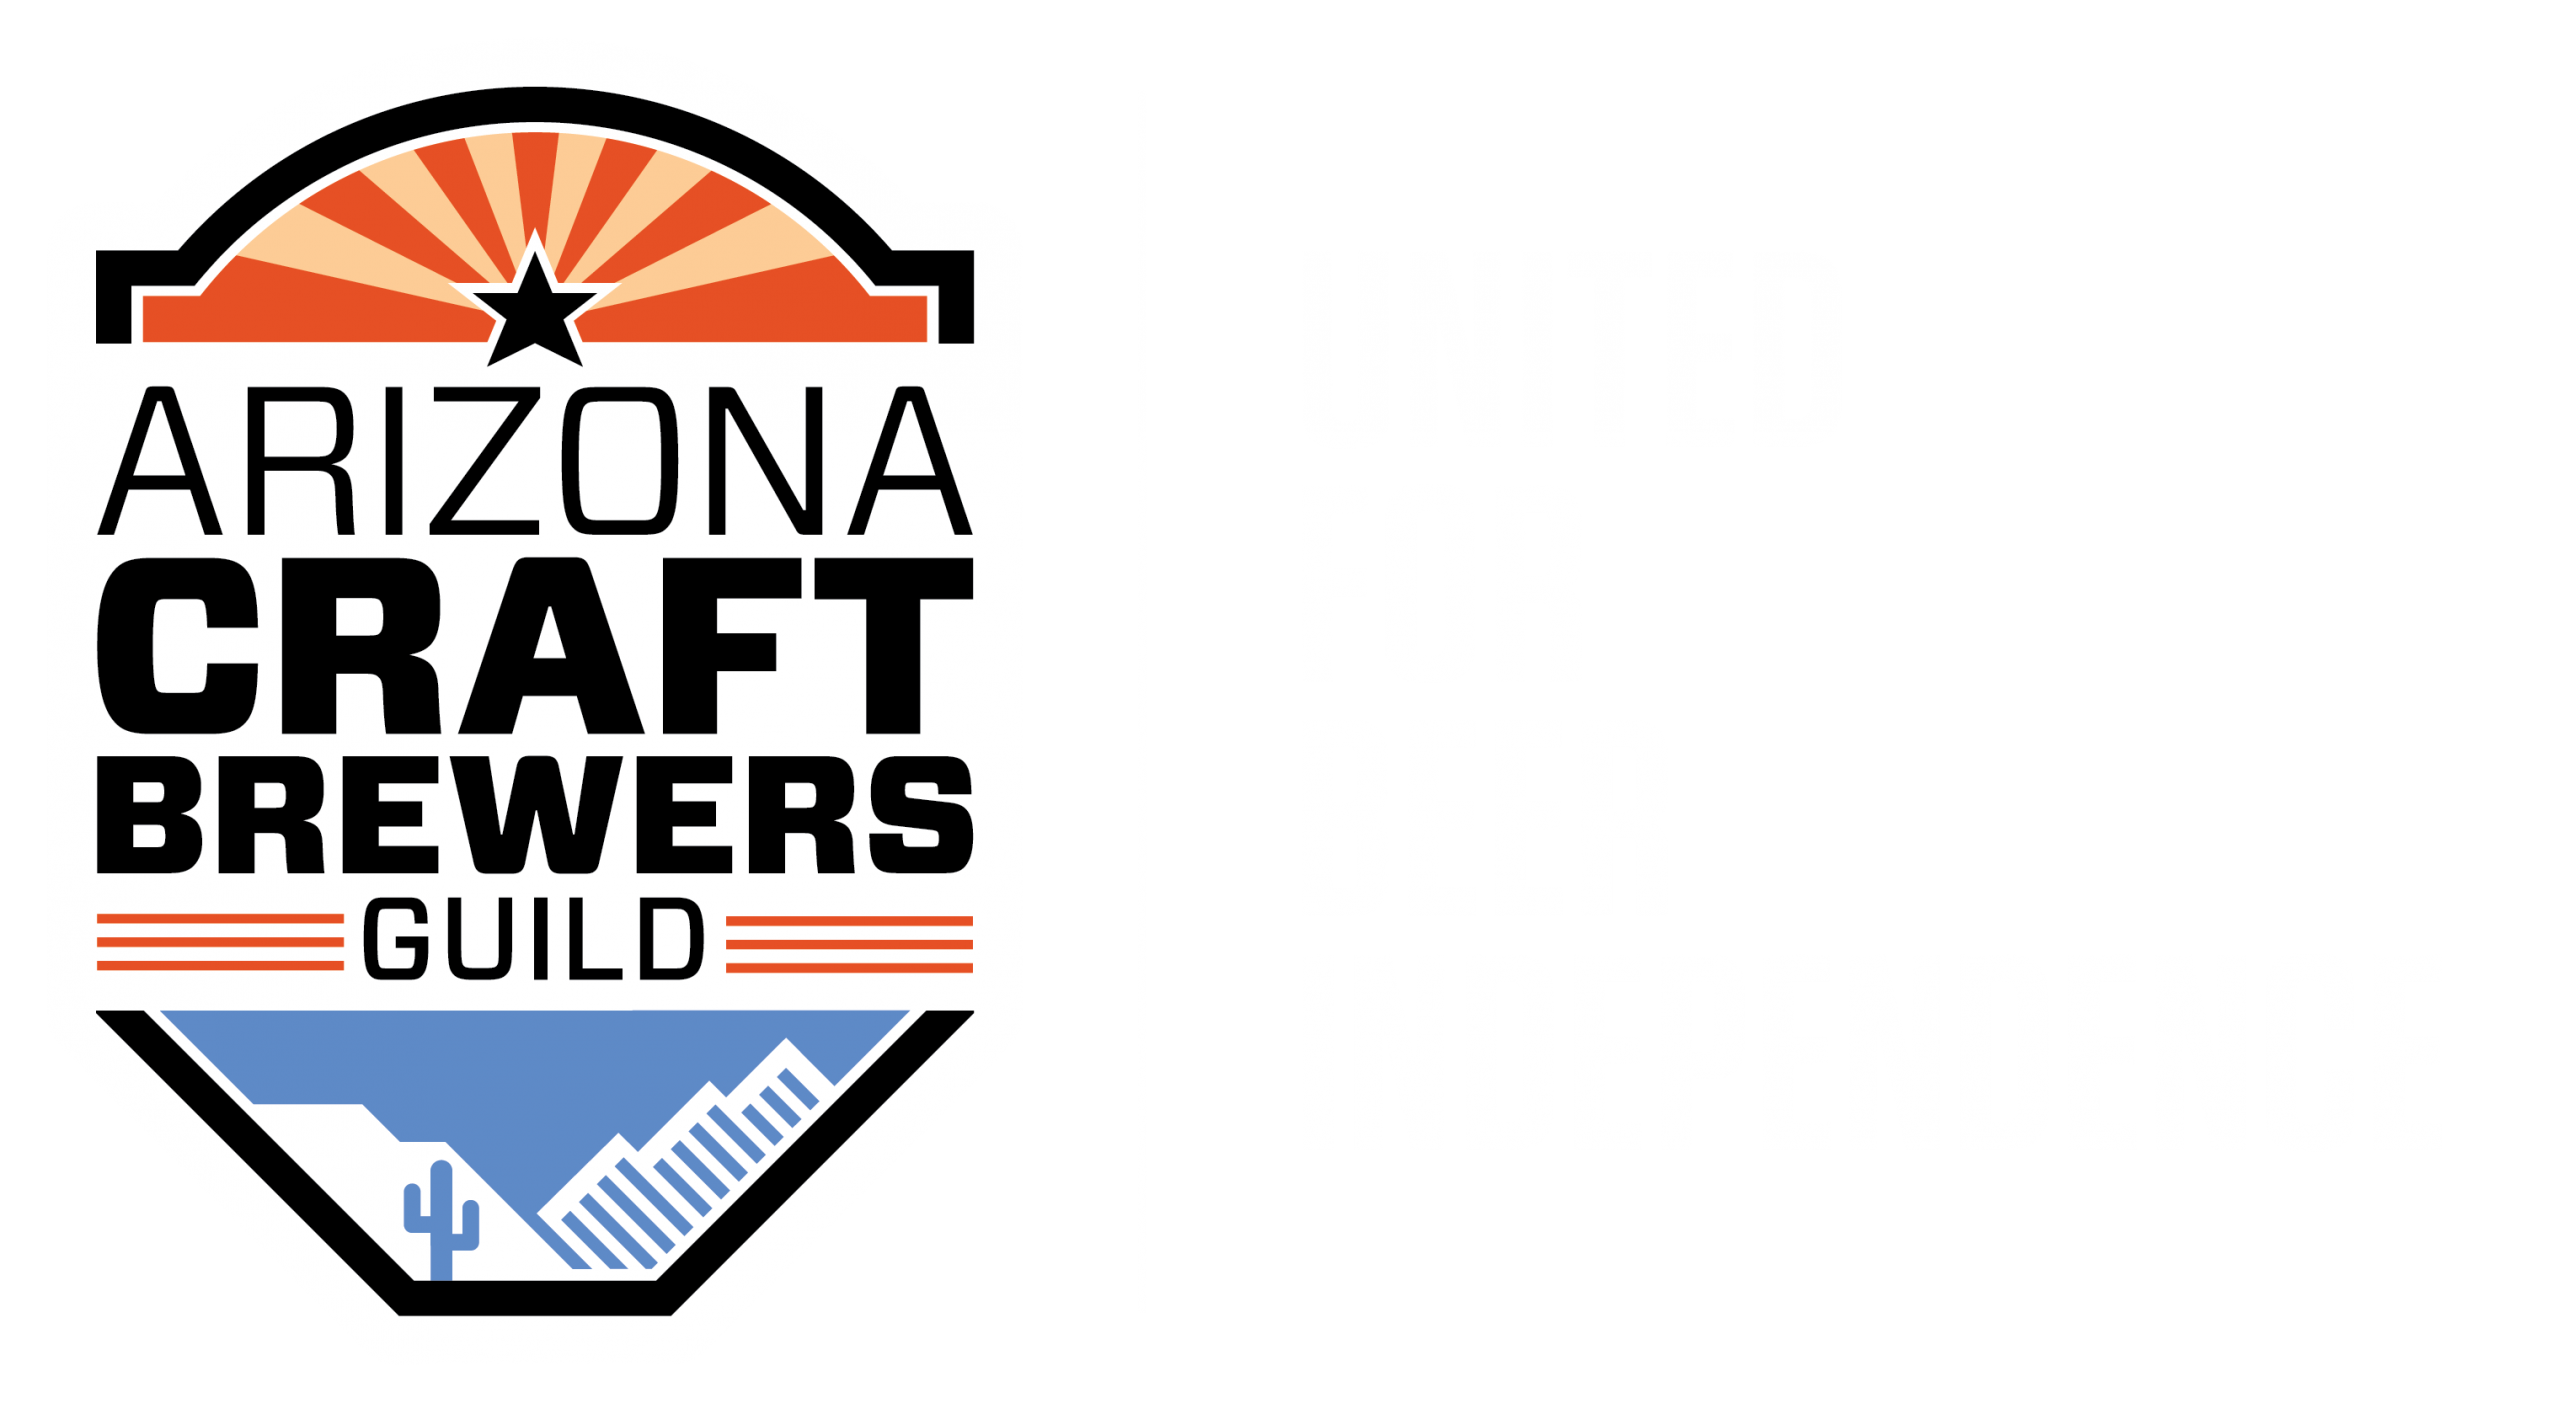 Belfry Brewery | Arizona Craft Brewers Guild